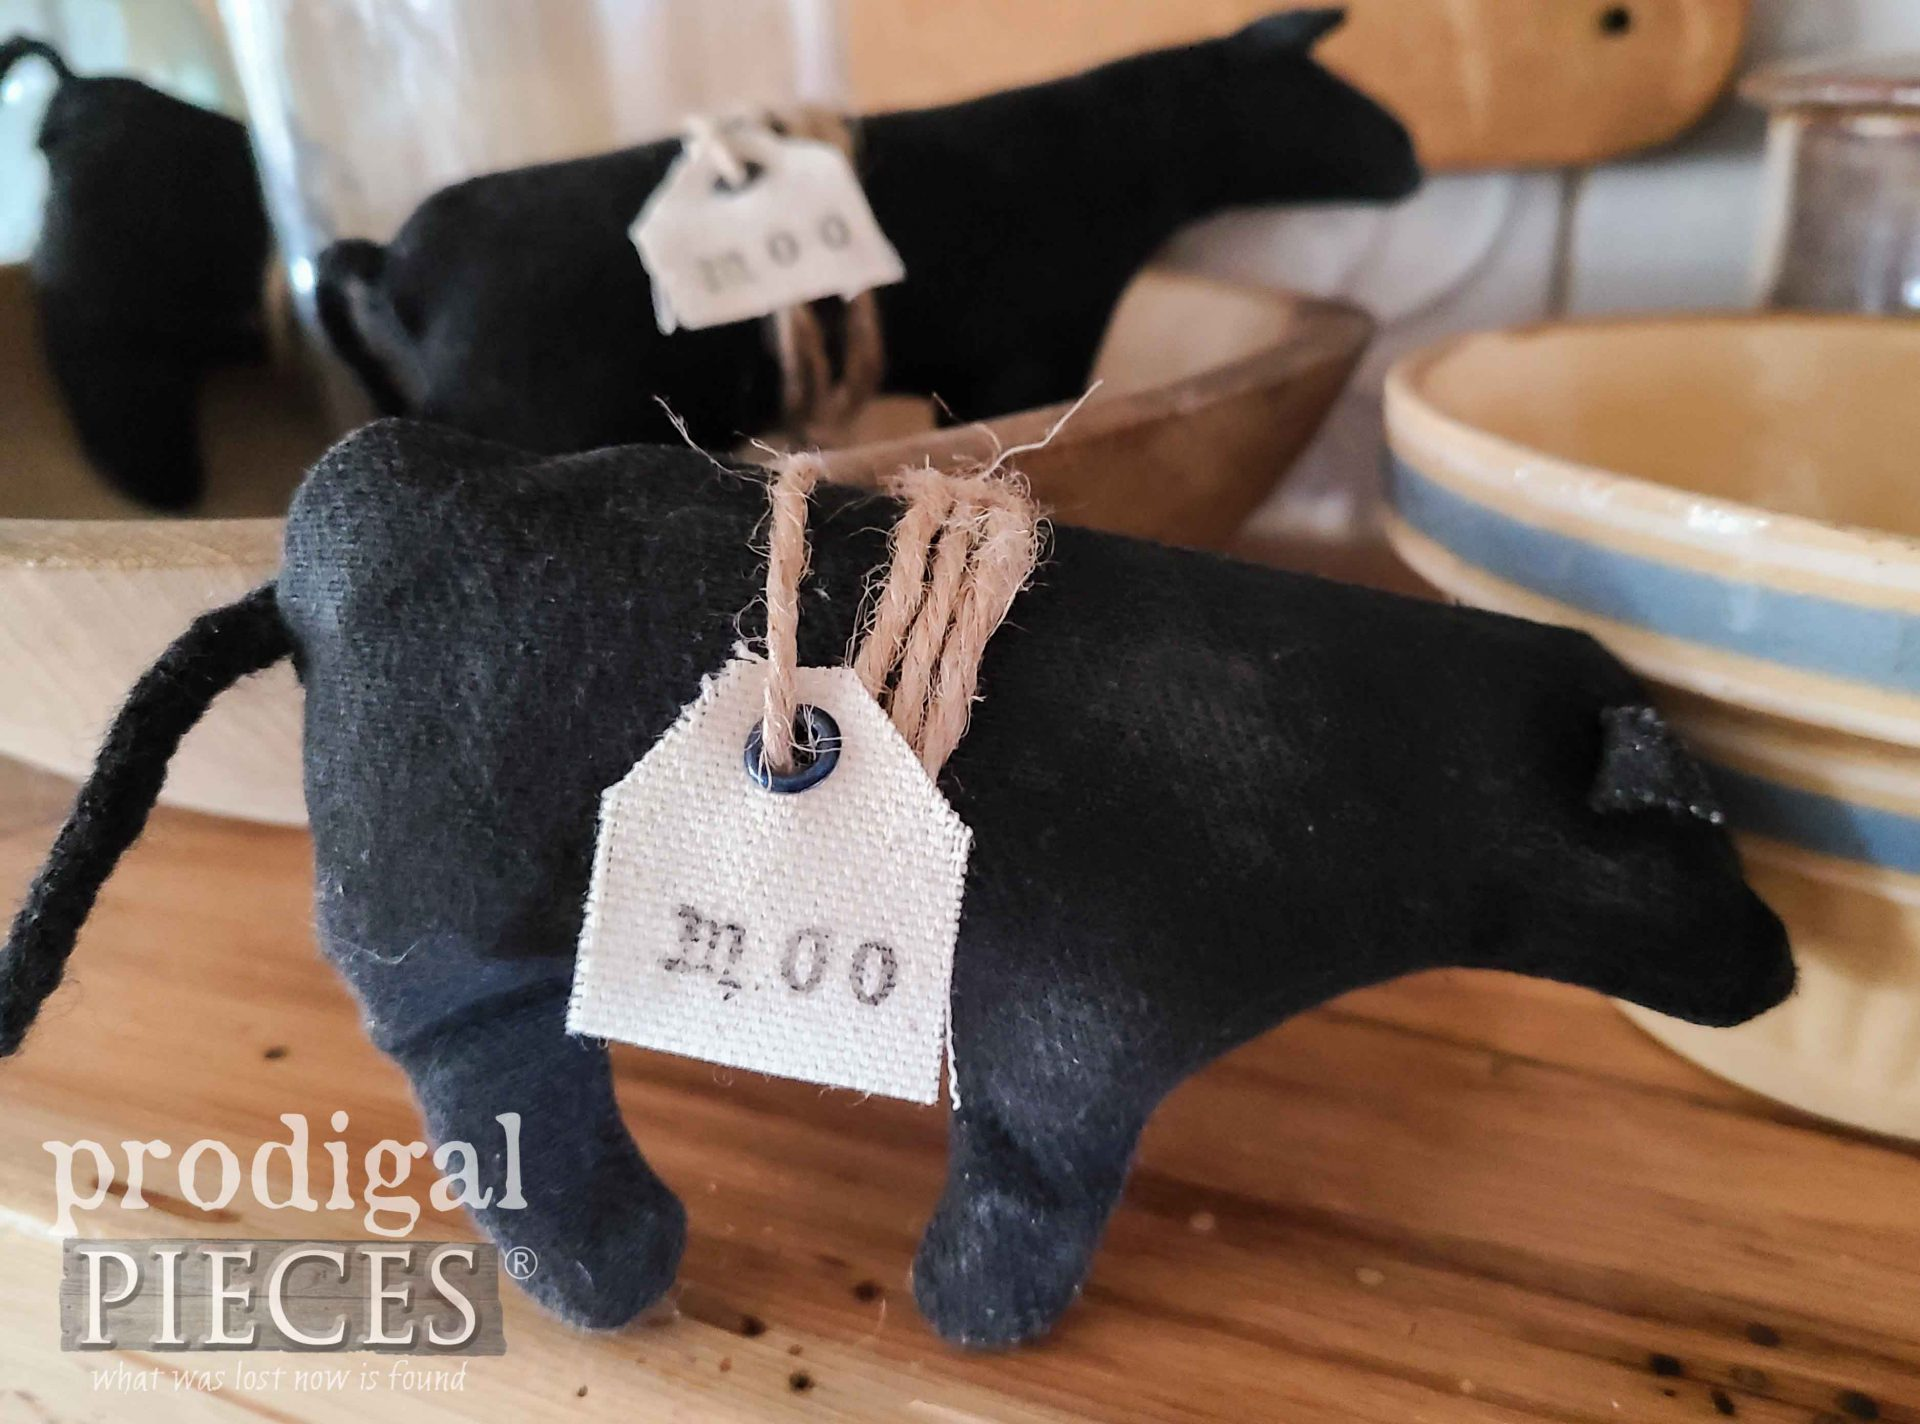 Handmade Black Angus Cow Bowl Filler by Larissa of Prodigal Pieces | prodigalpieces.com #prodigalpieces #farmhouse #cow #animal #prim #home #homedecor